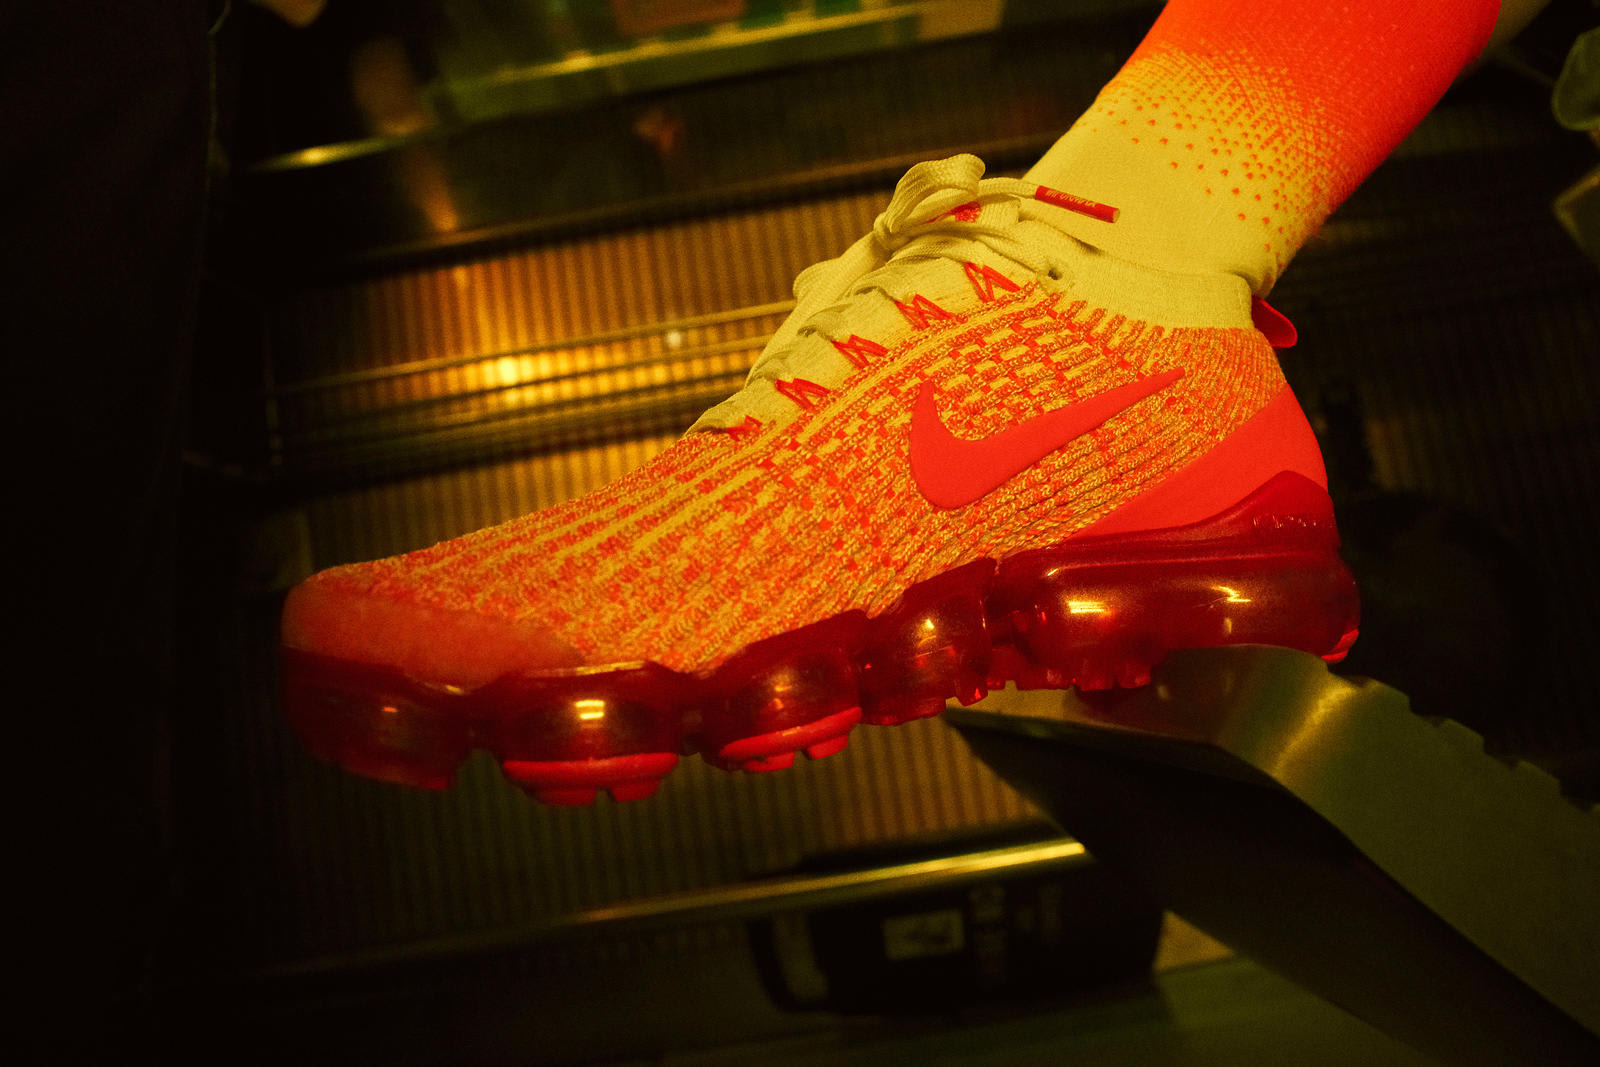 Nike China Hoop Dreams VaporMax Flyknit 3 Orange